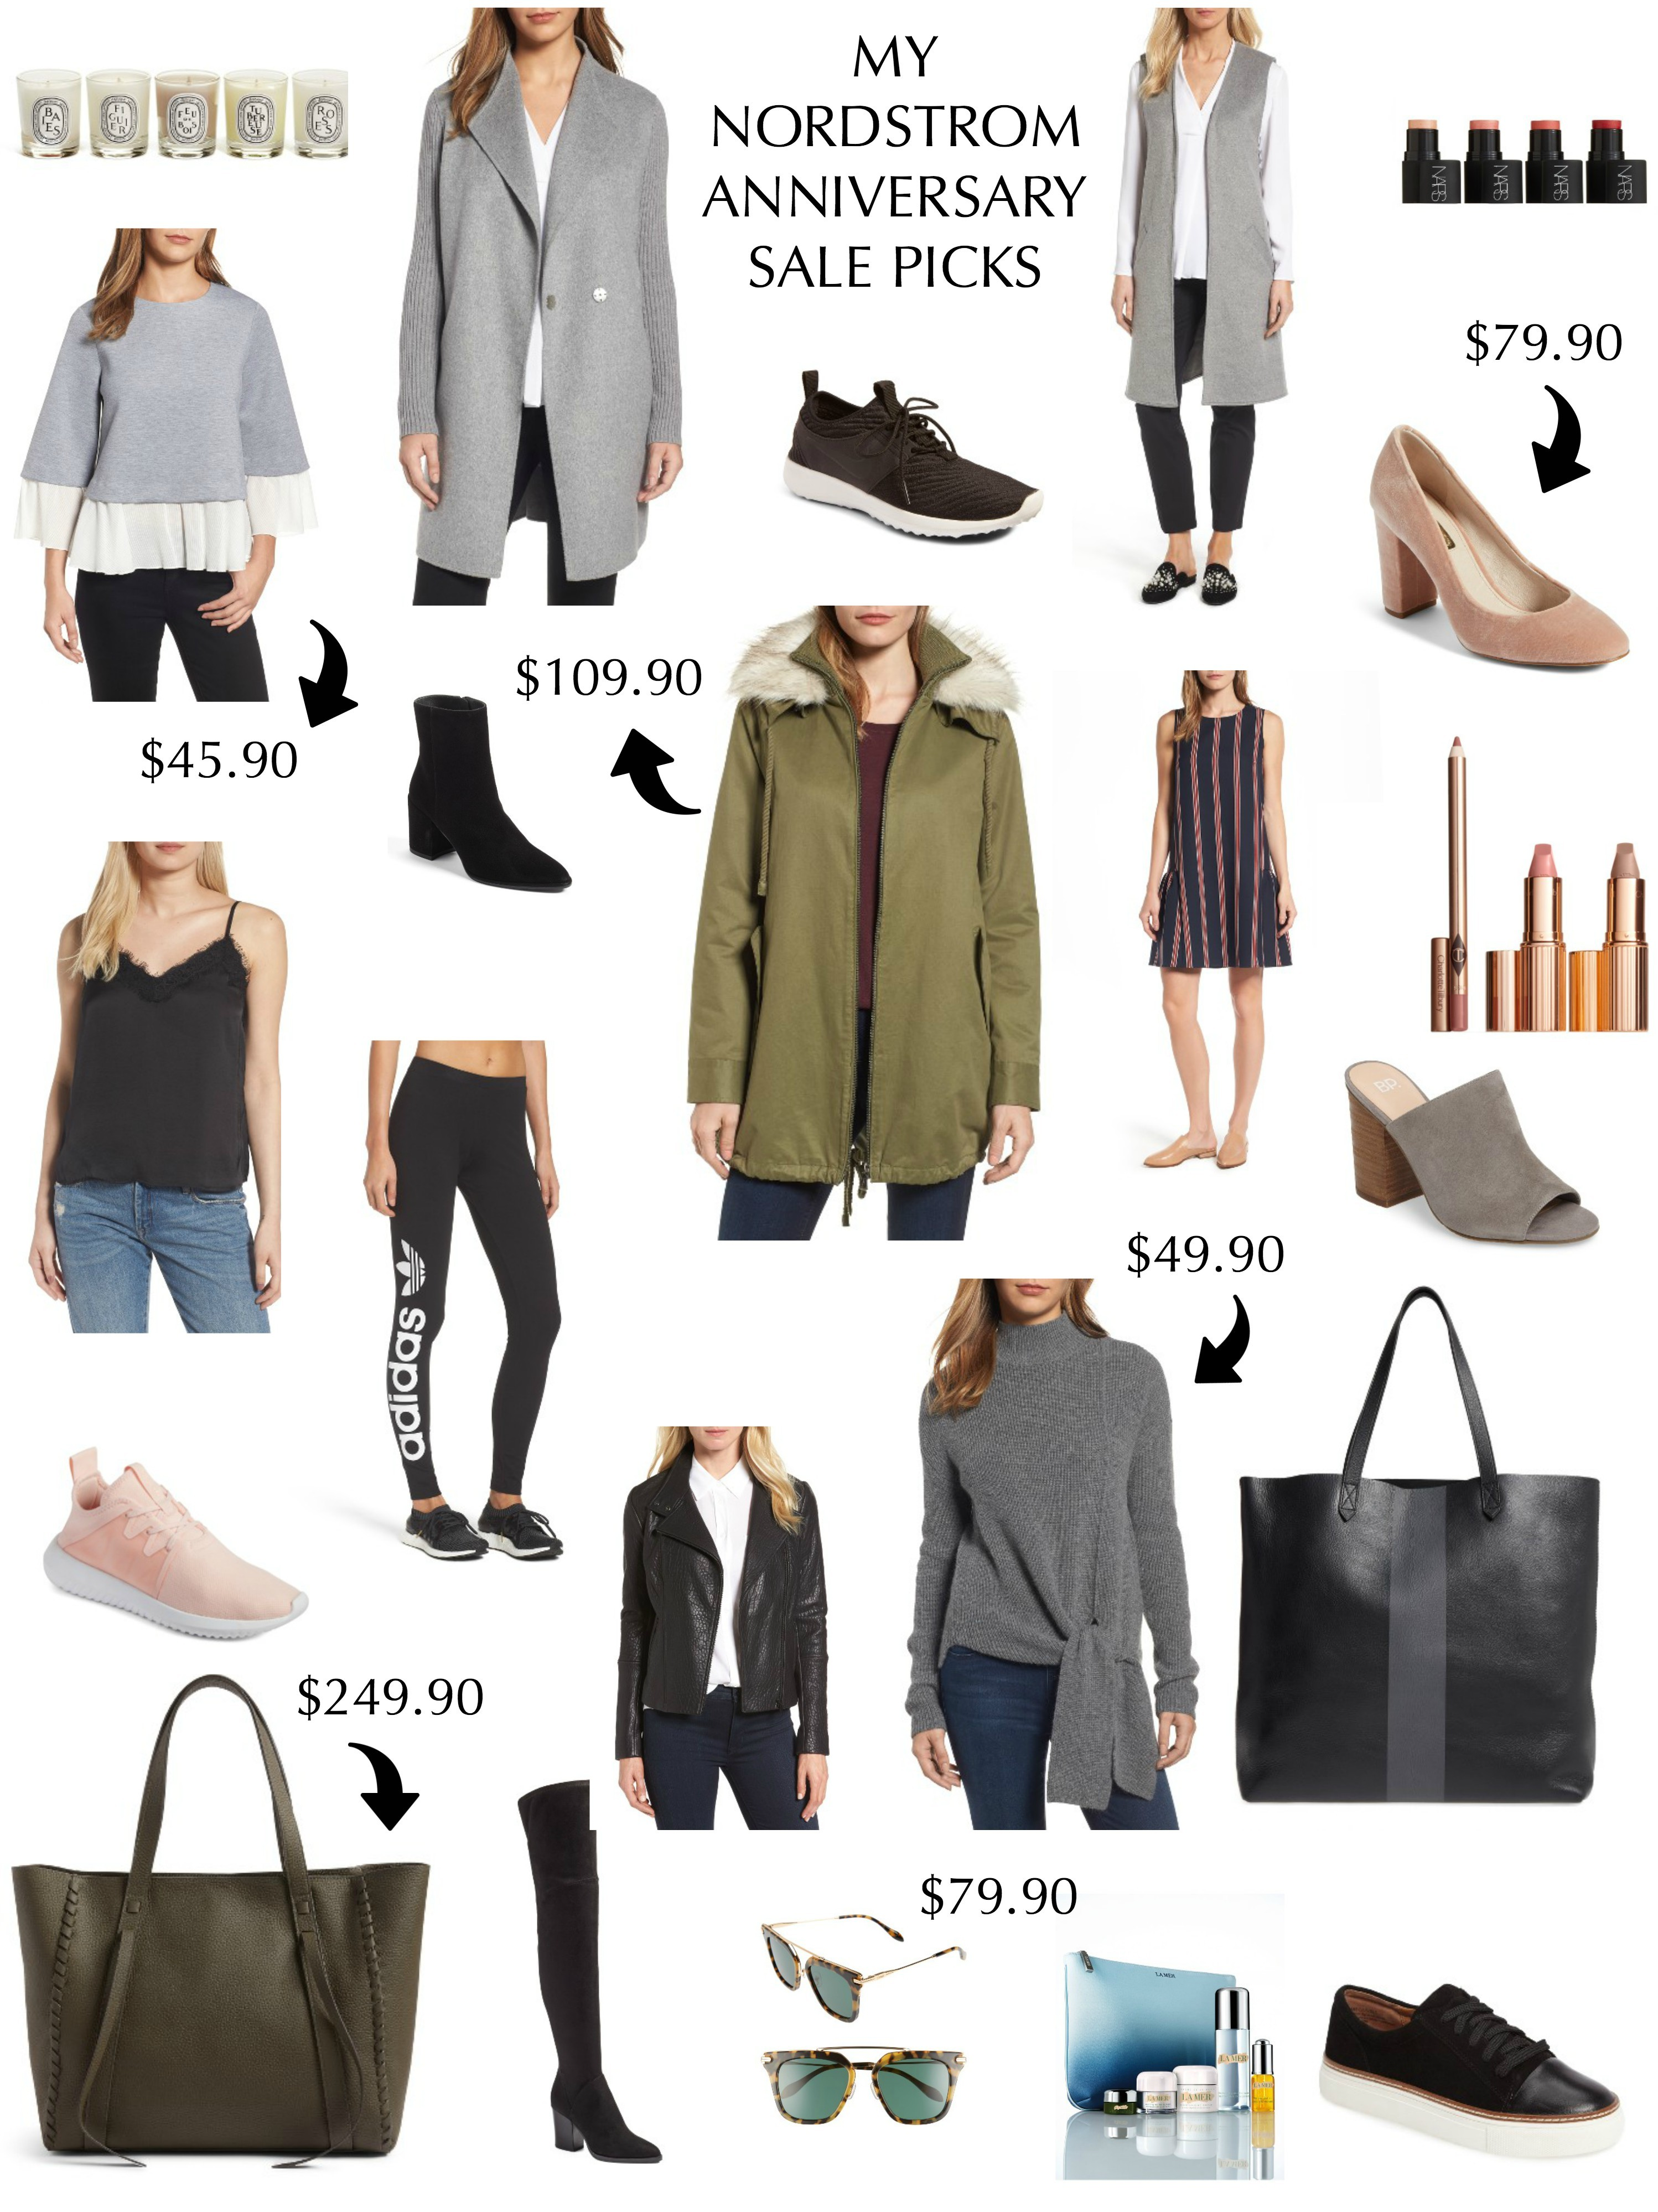 0fbe802ffca Since I m up quite often during the night it made it easier for me to get  the first look at all the goods and then round up my Nordstrom anniversary  sale ...